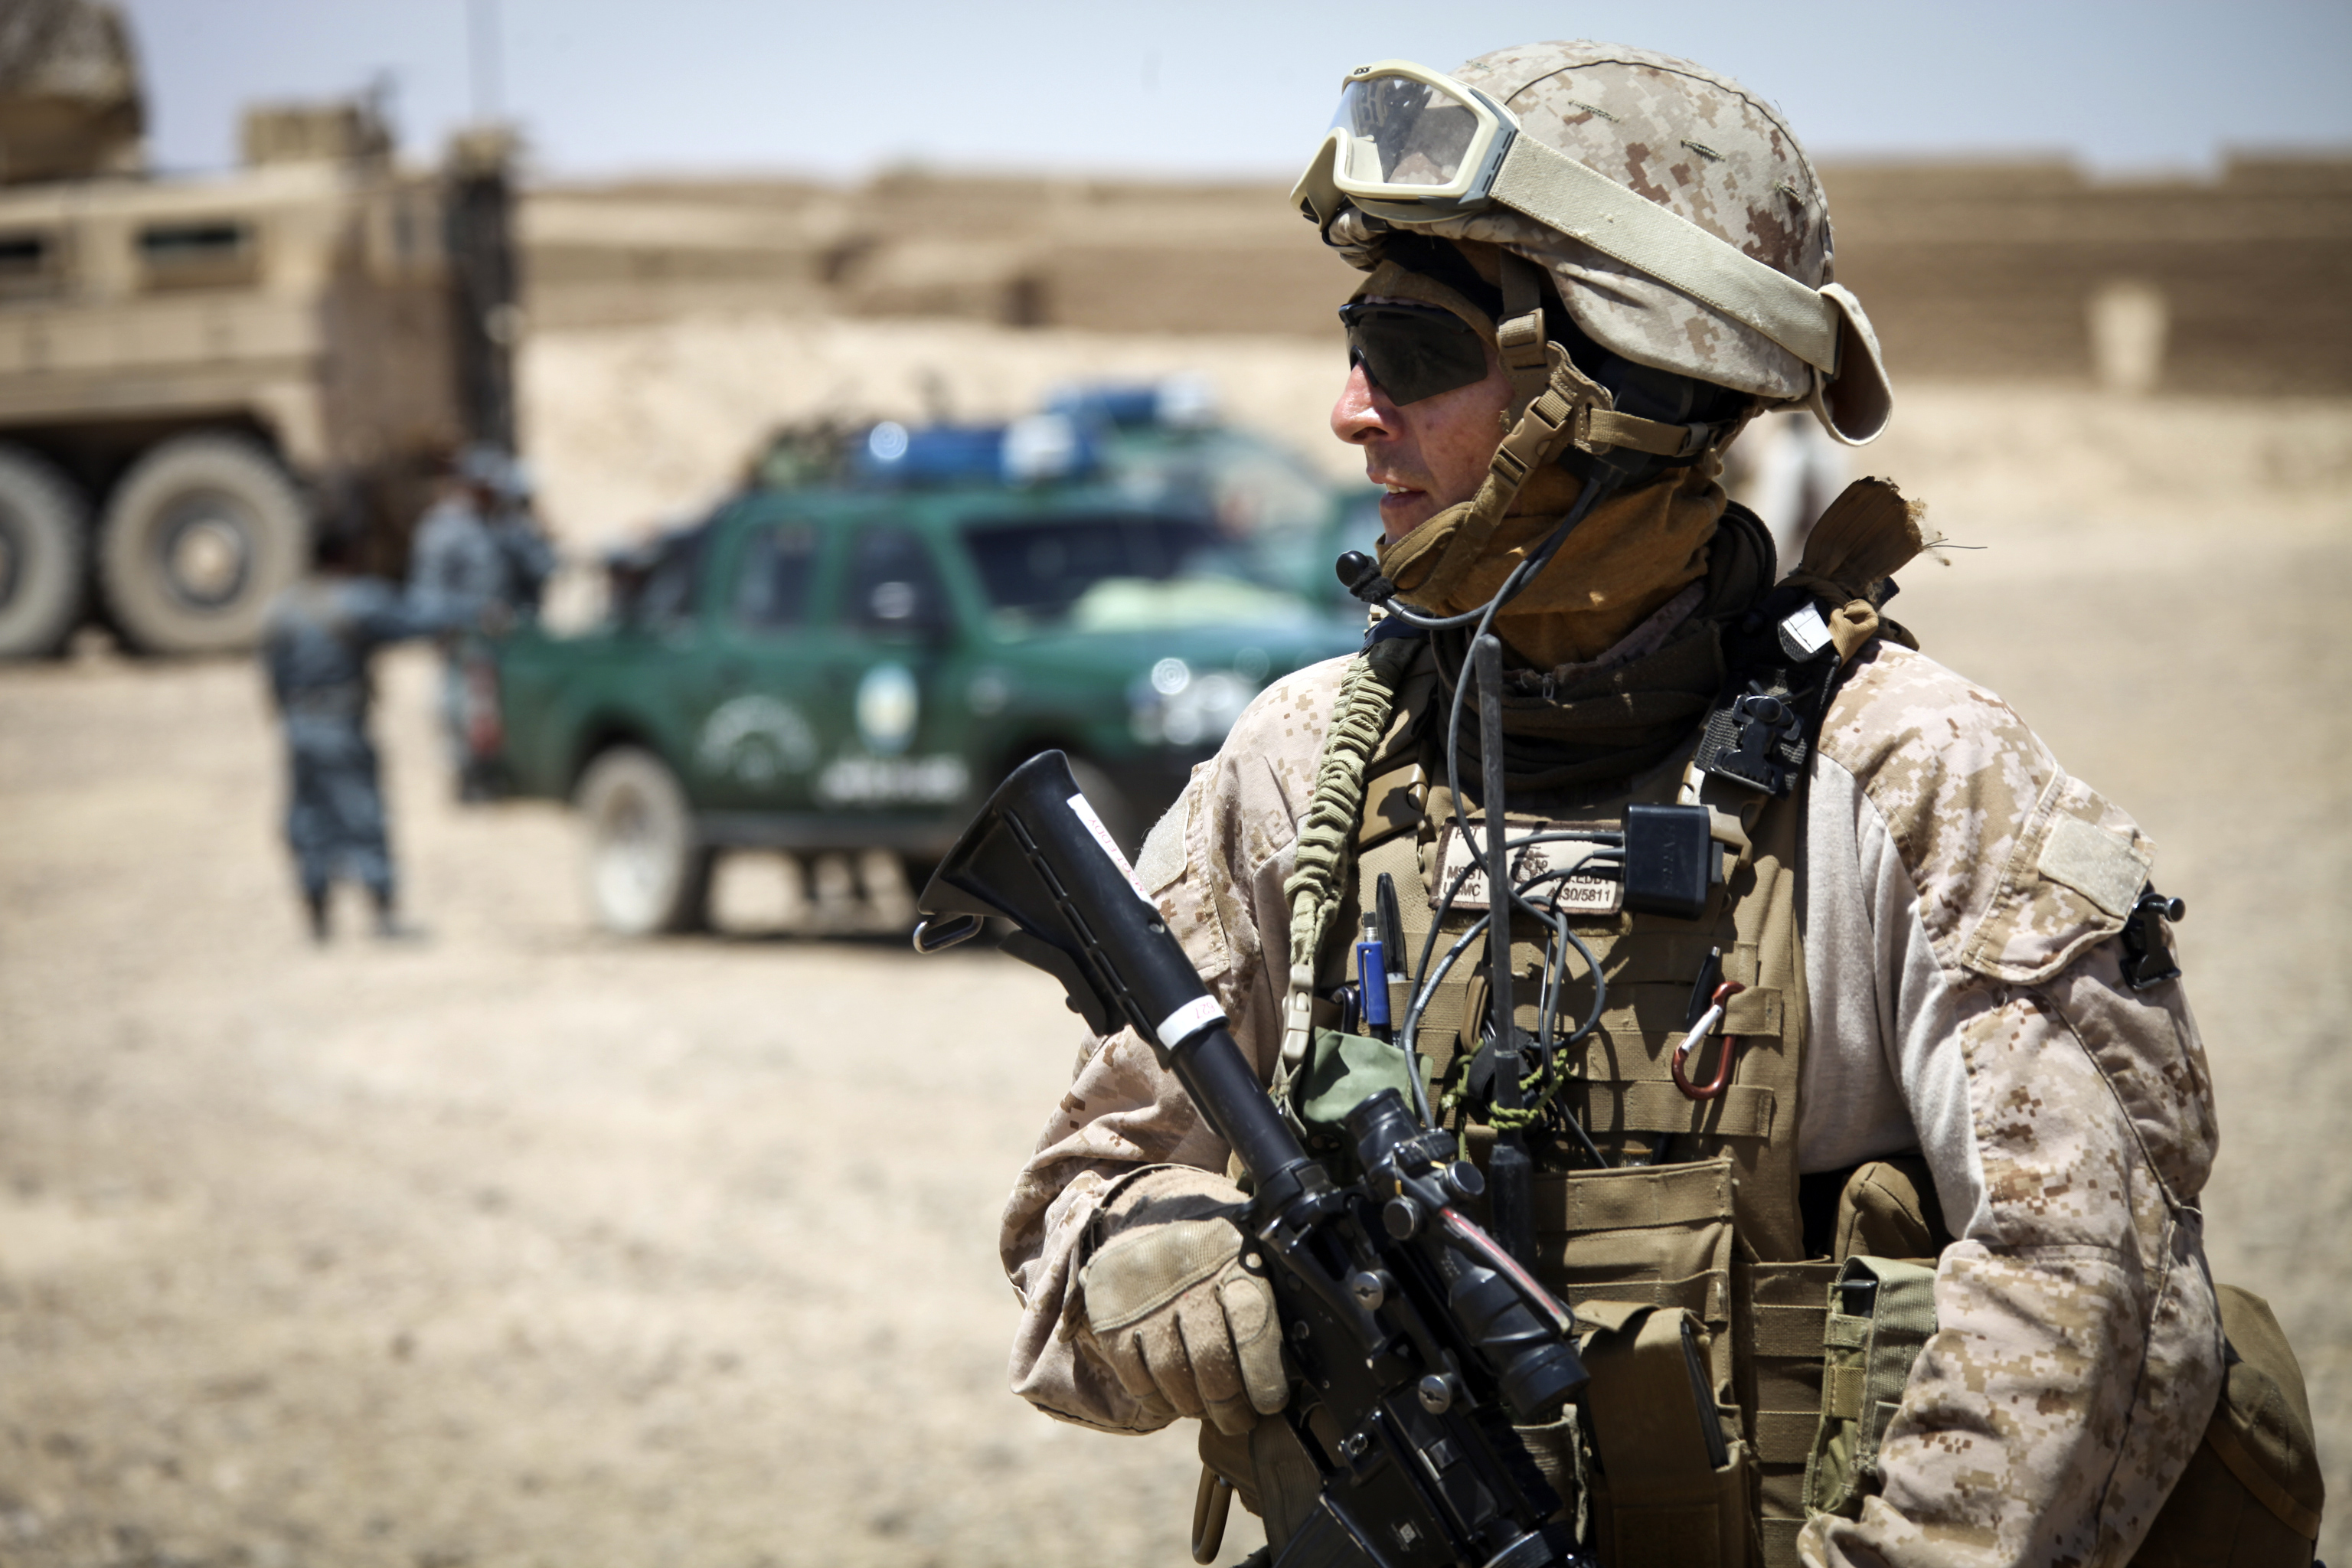 File:U.S. Marine Corps Master Sgt. Chad Eddy, assigned to Police ...